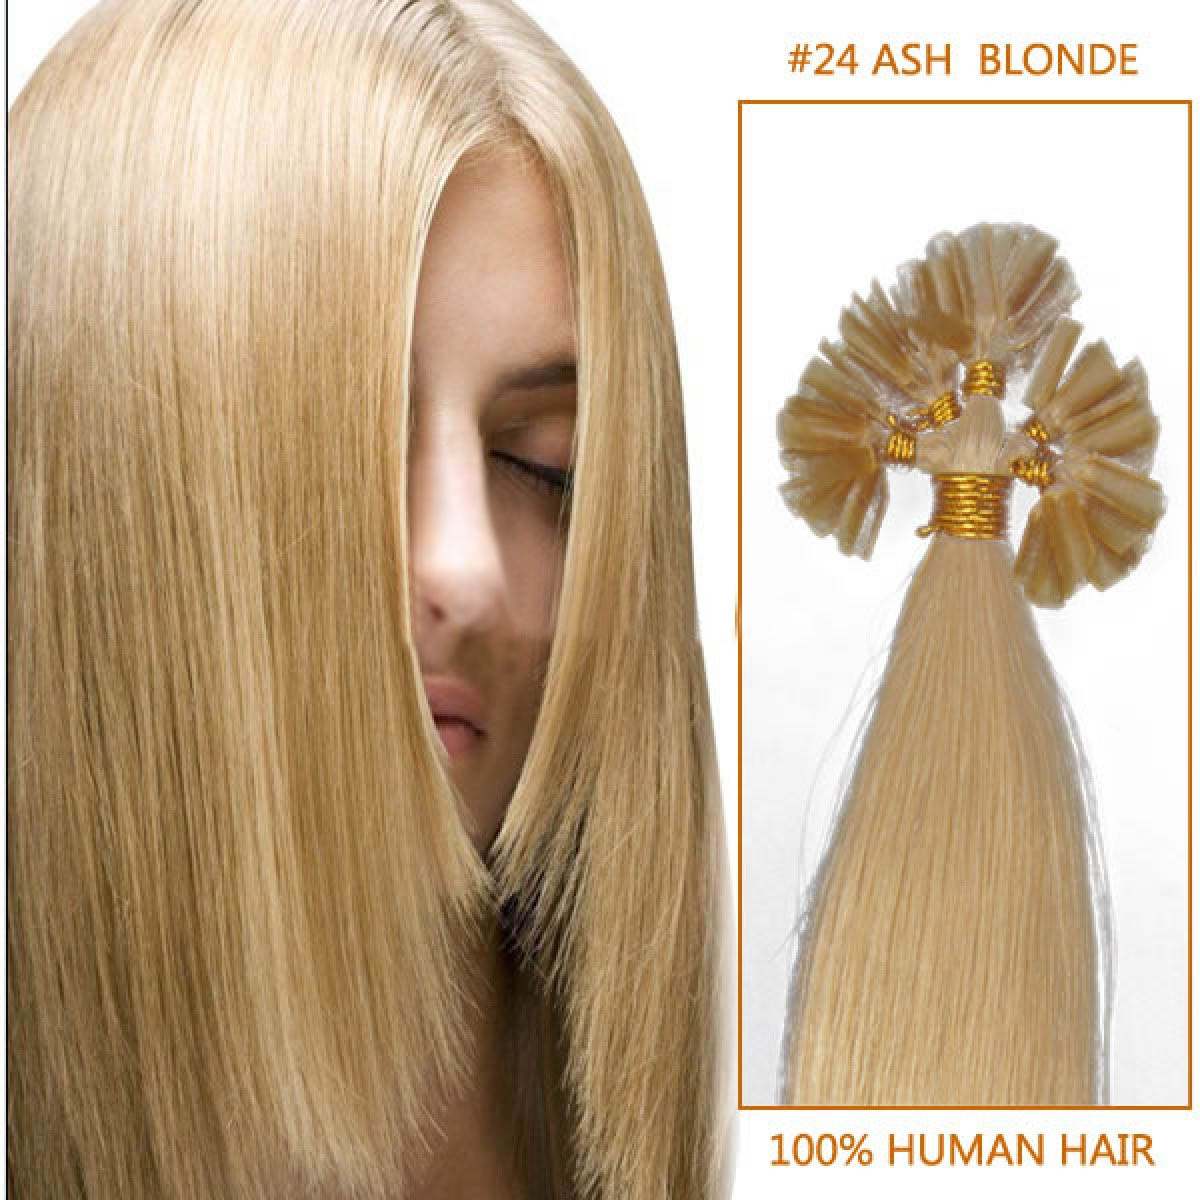 22 Inch Blonde Human Hair Extensions Human Hair Extensions